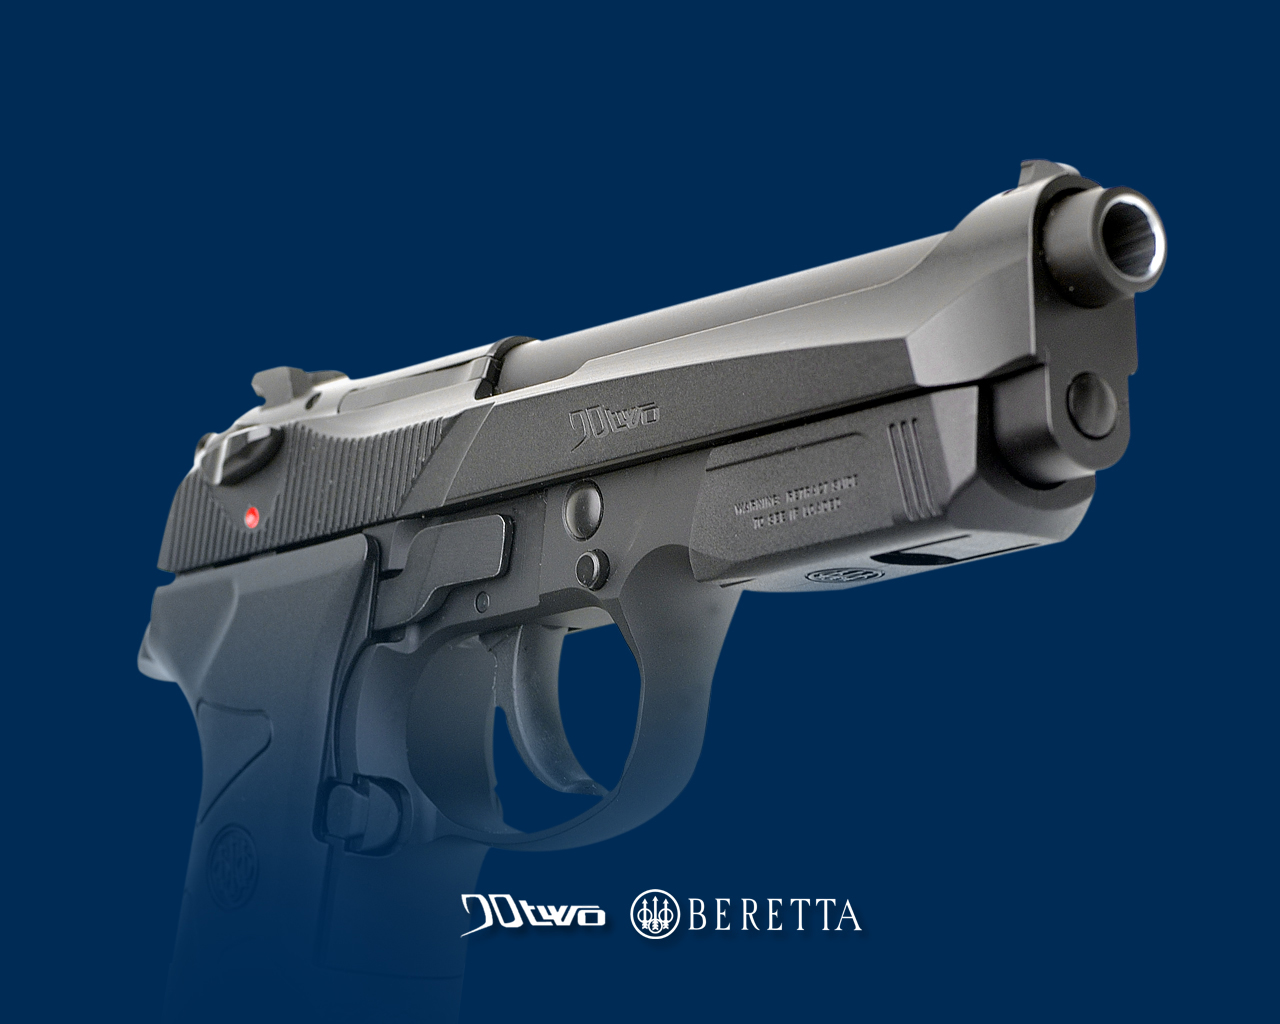 Beretta Elite Pistol Computer Wallpapers, Desktop Backgrounds 1280x1024